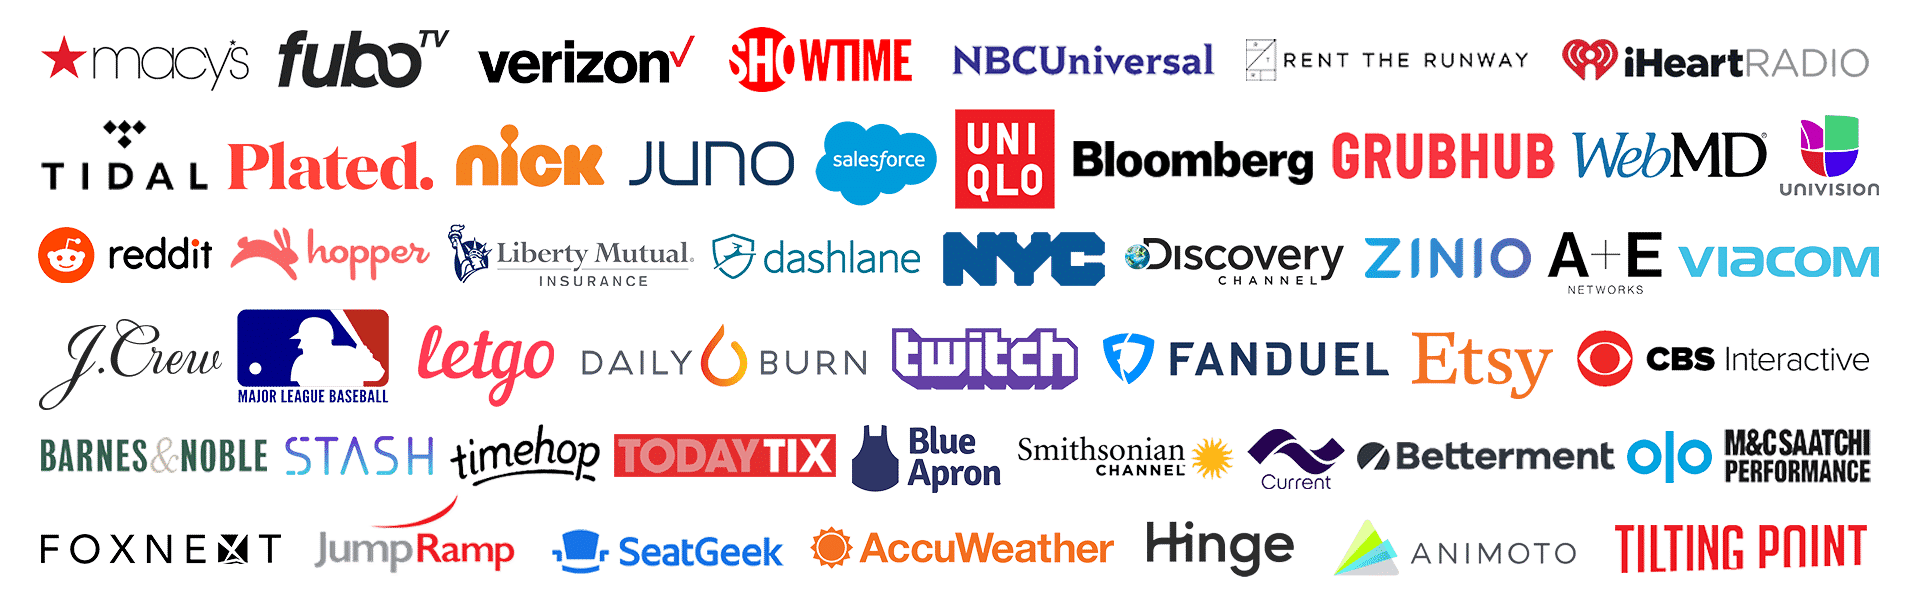 App Growth Summit NYC - Companies Attending